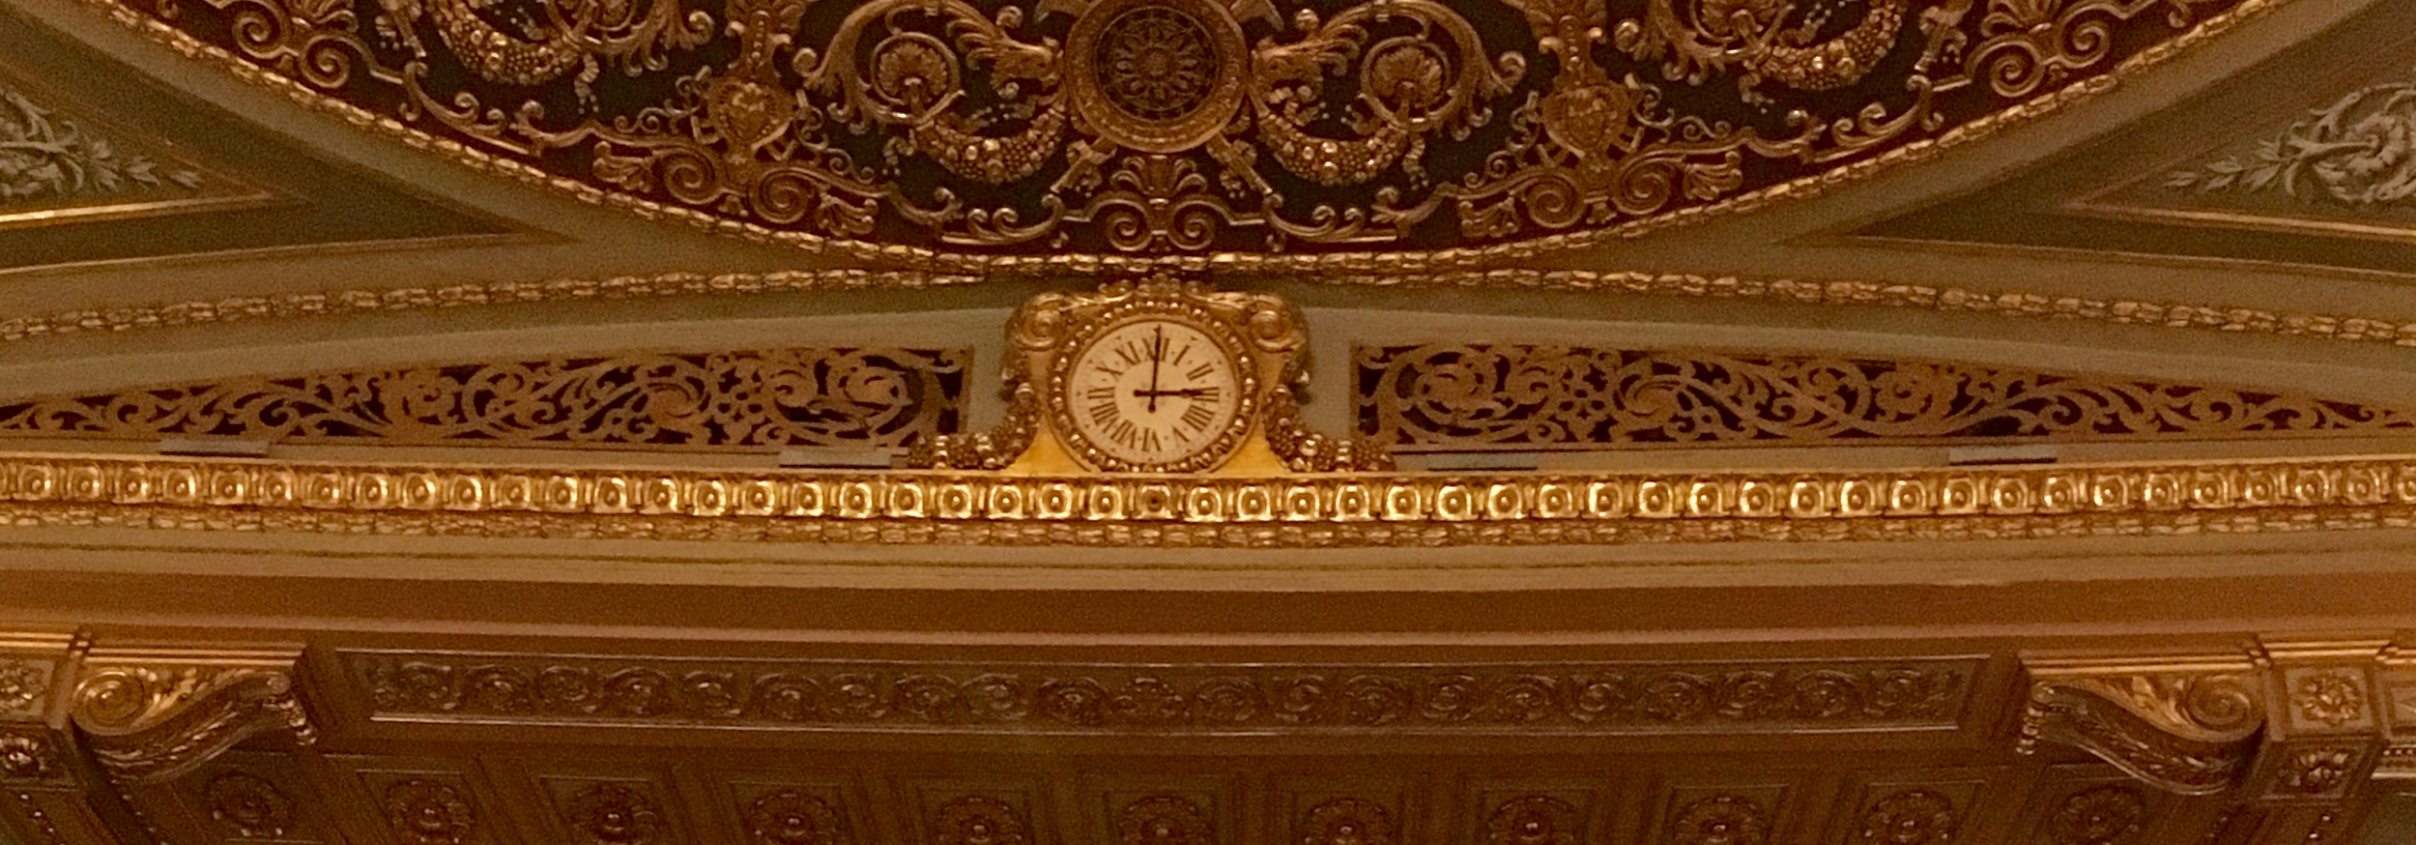 Detail of the clock above the stage at the Lisbon Opera House